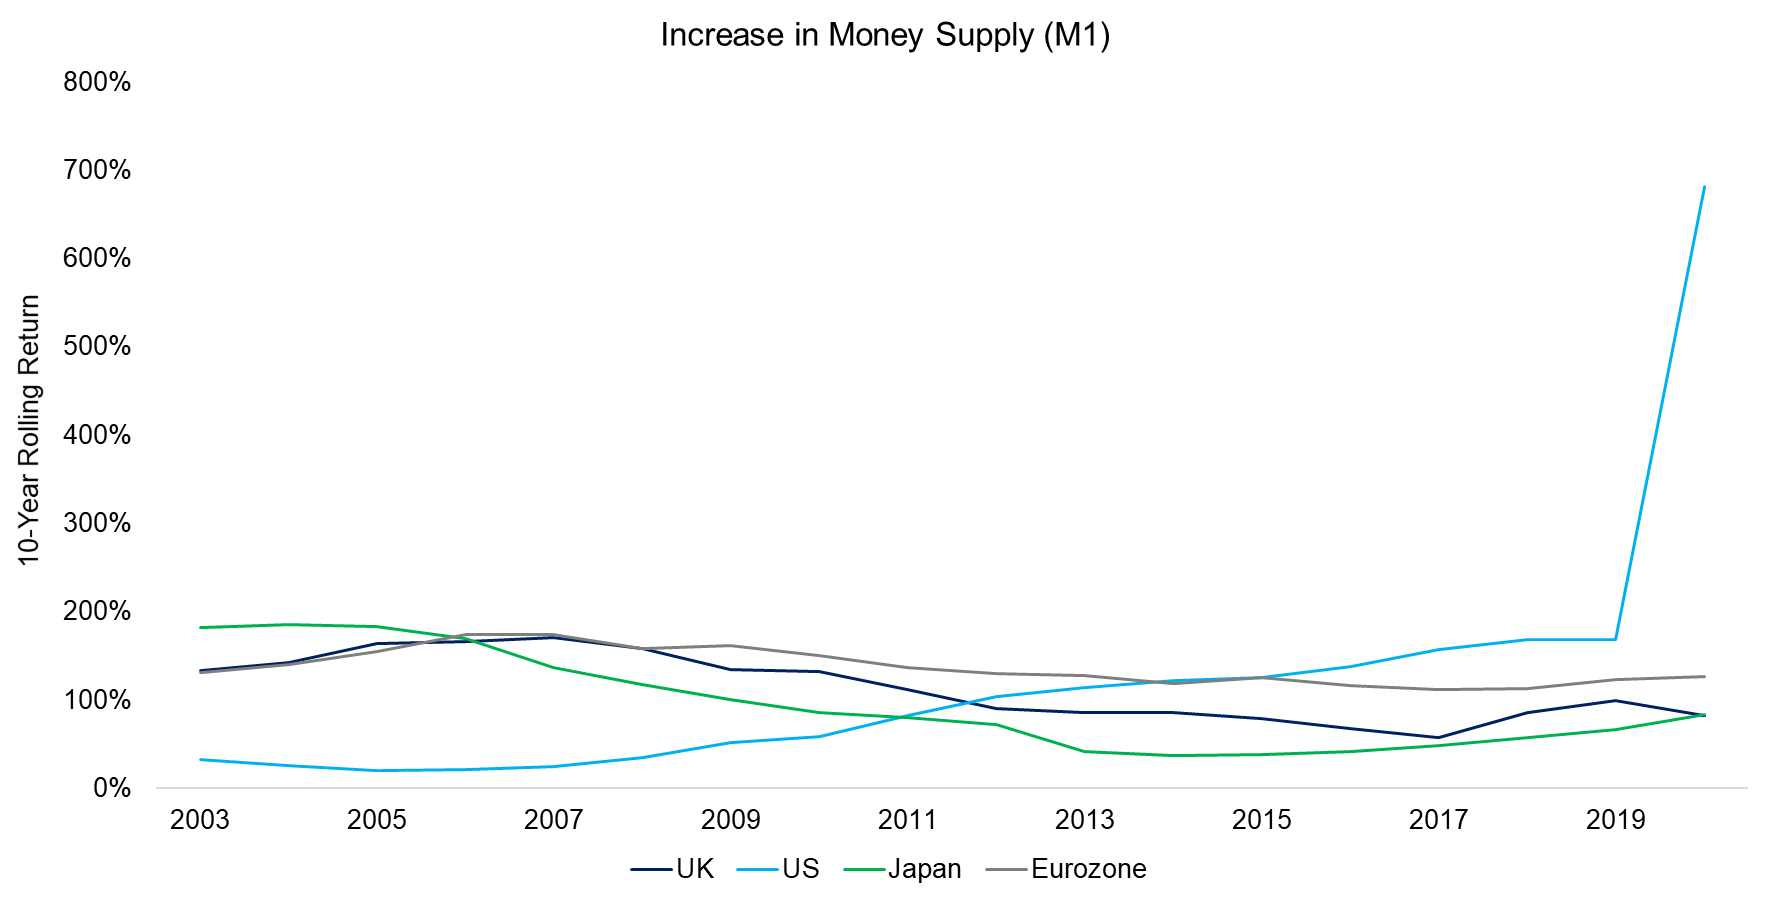 Increase in Money Supply (M1)